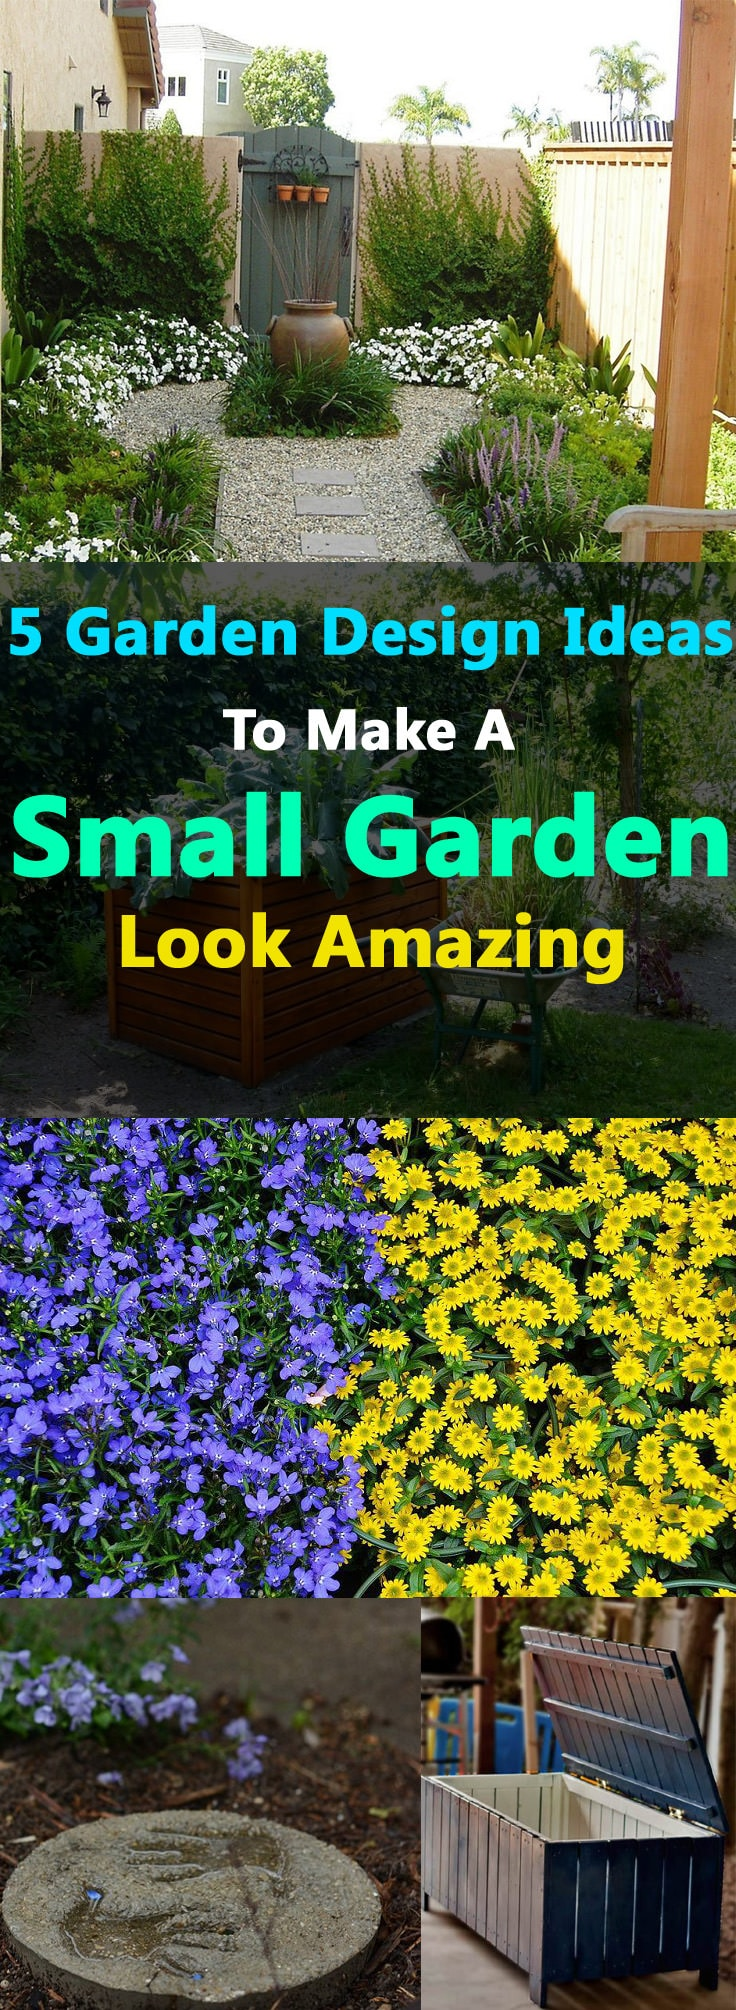 5 garden design ideas to make a small garden look amazing for Little garden design